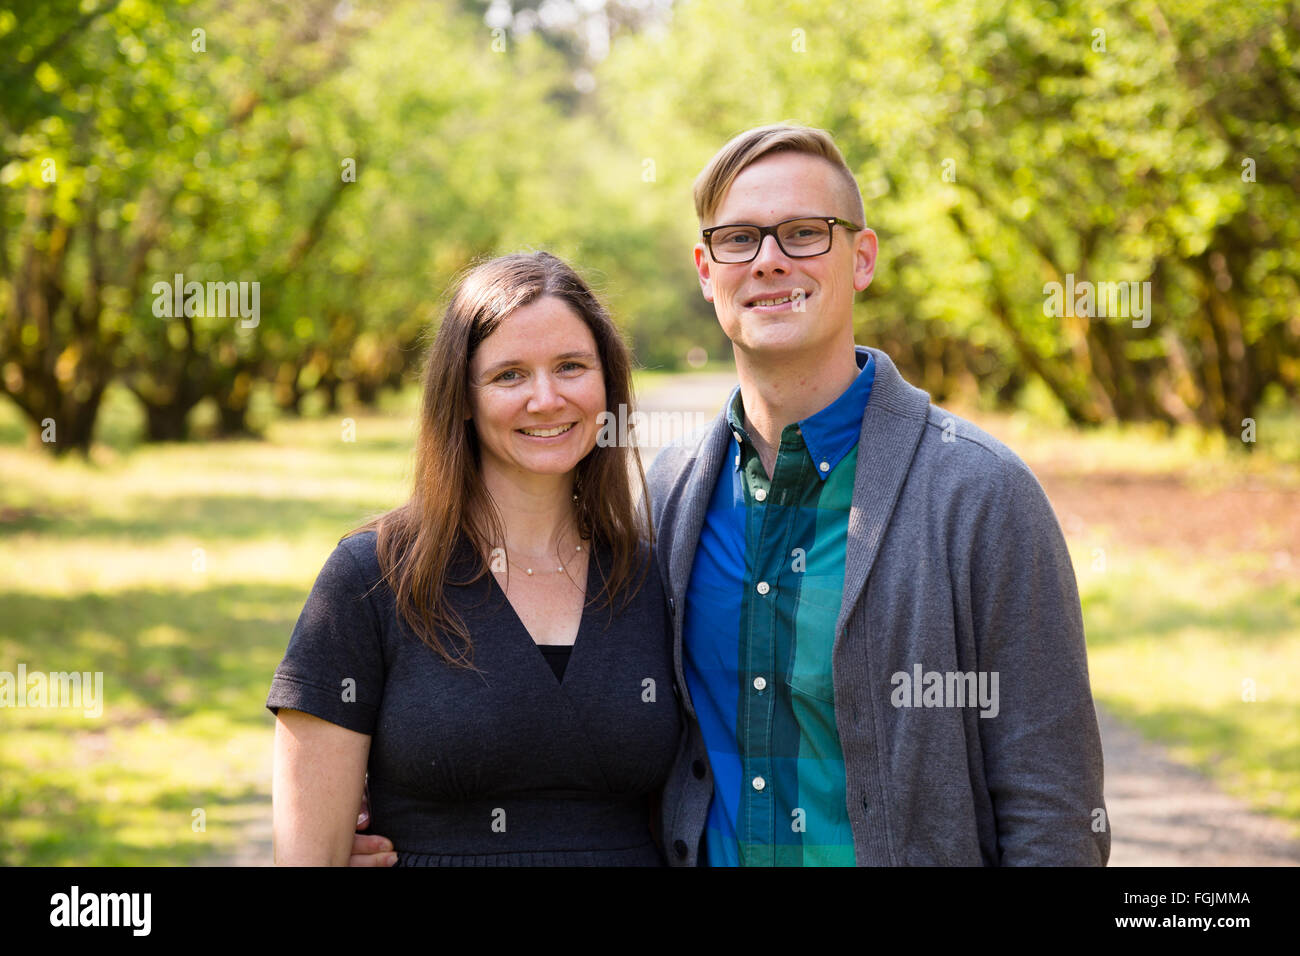 Lifestyle portrait of a happy couple outdoors with natural light. Stock Photo